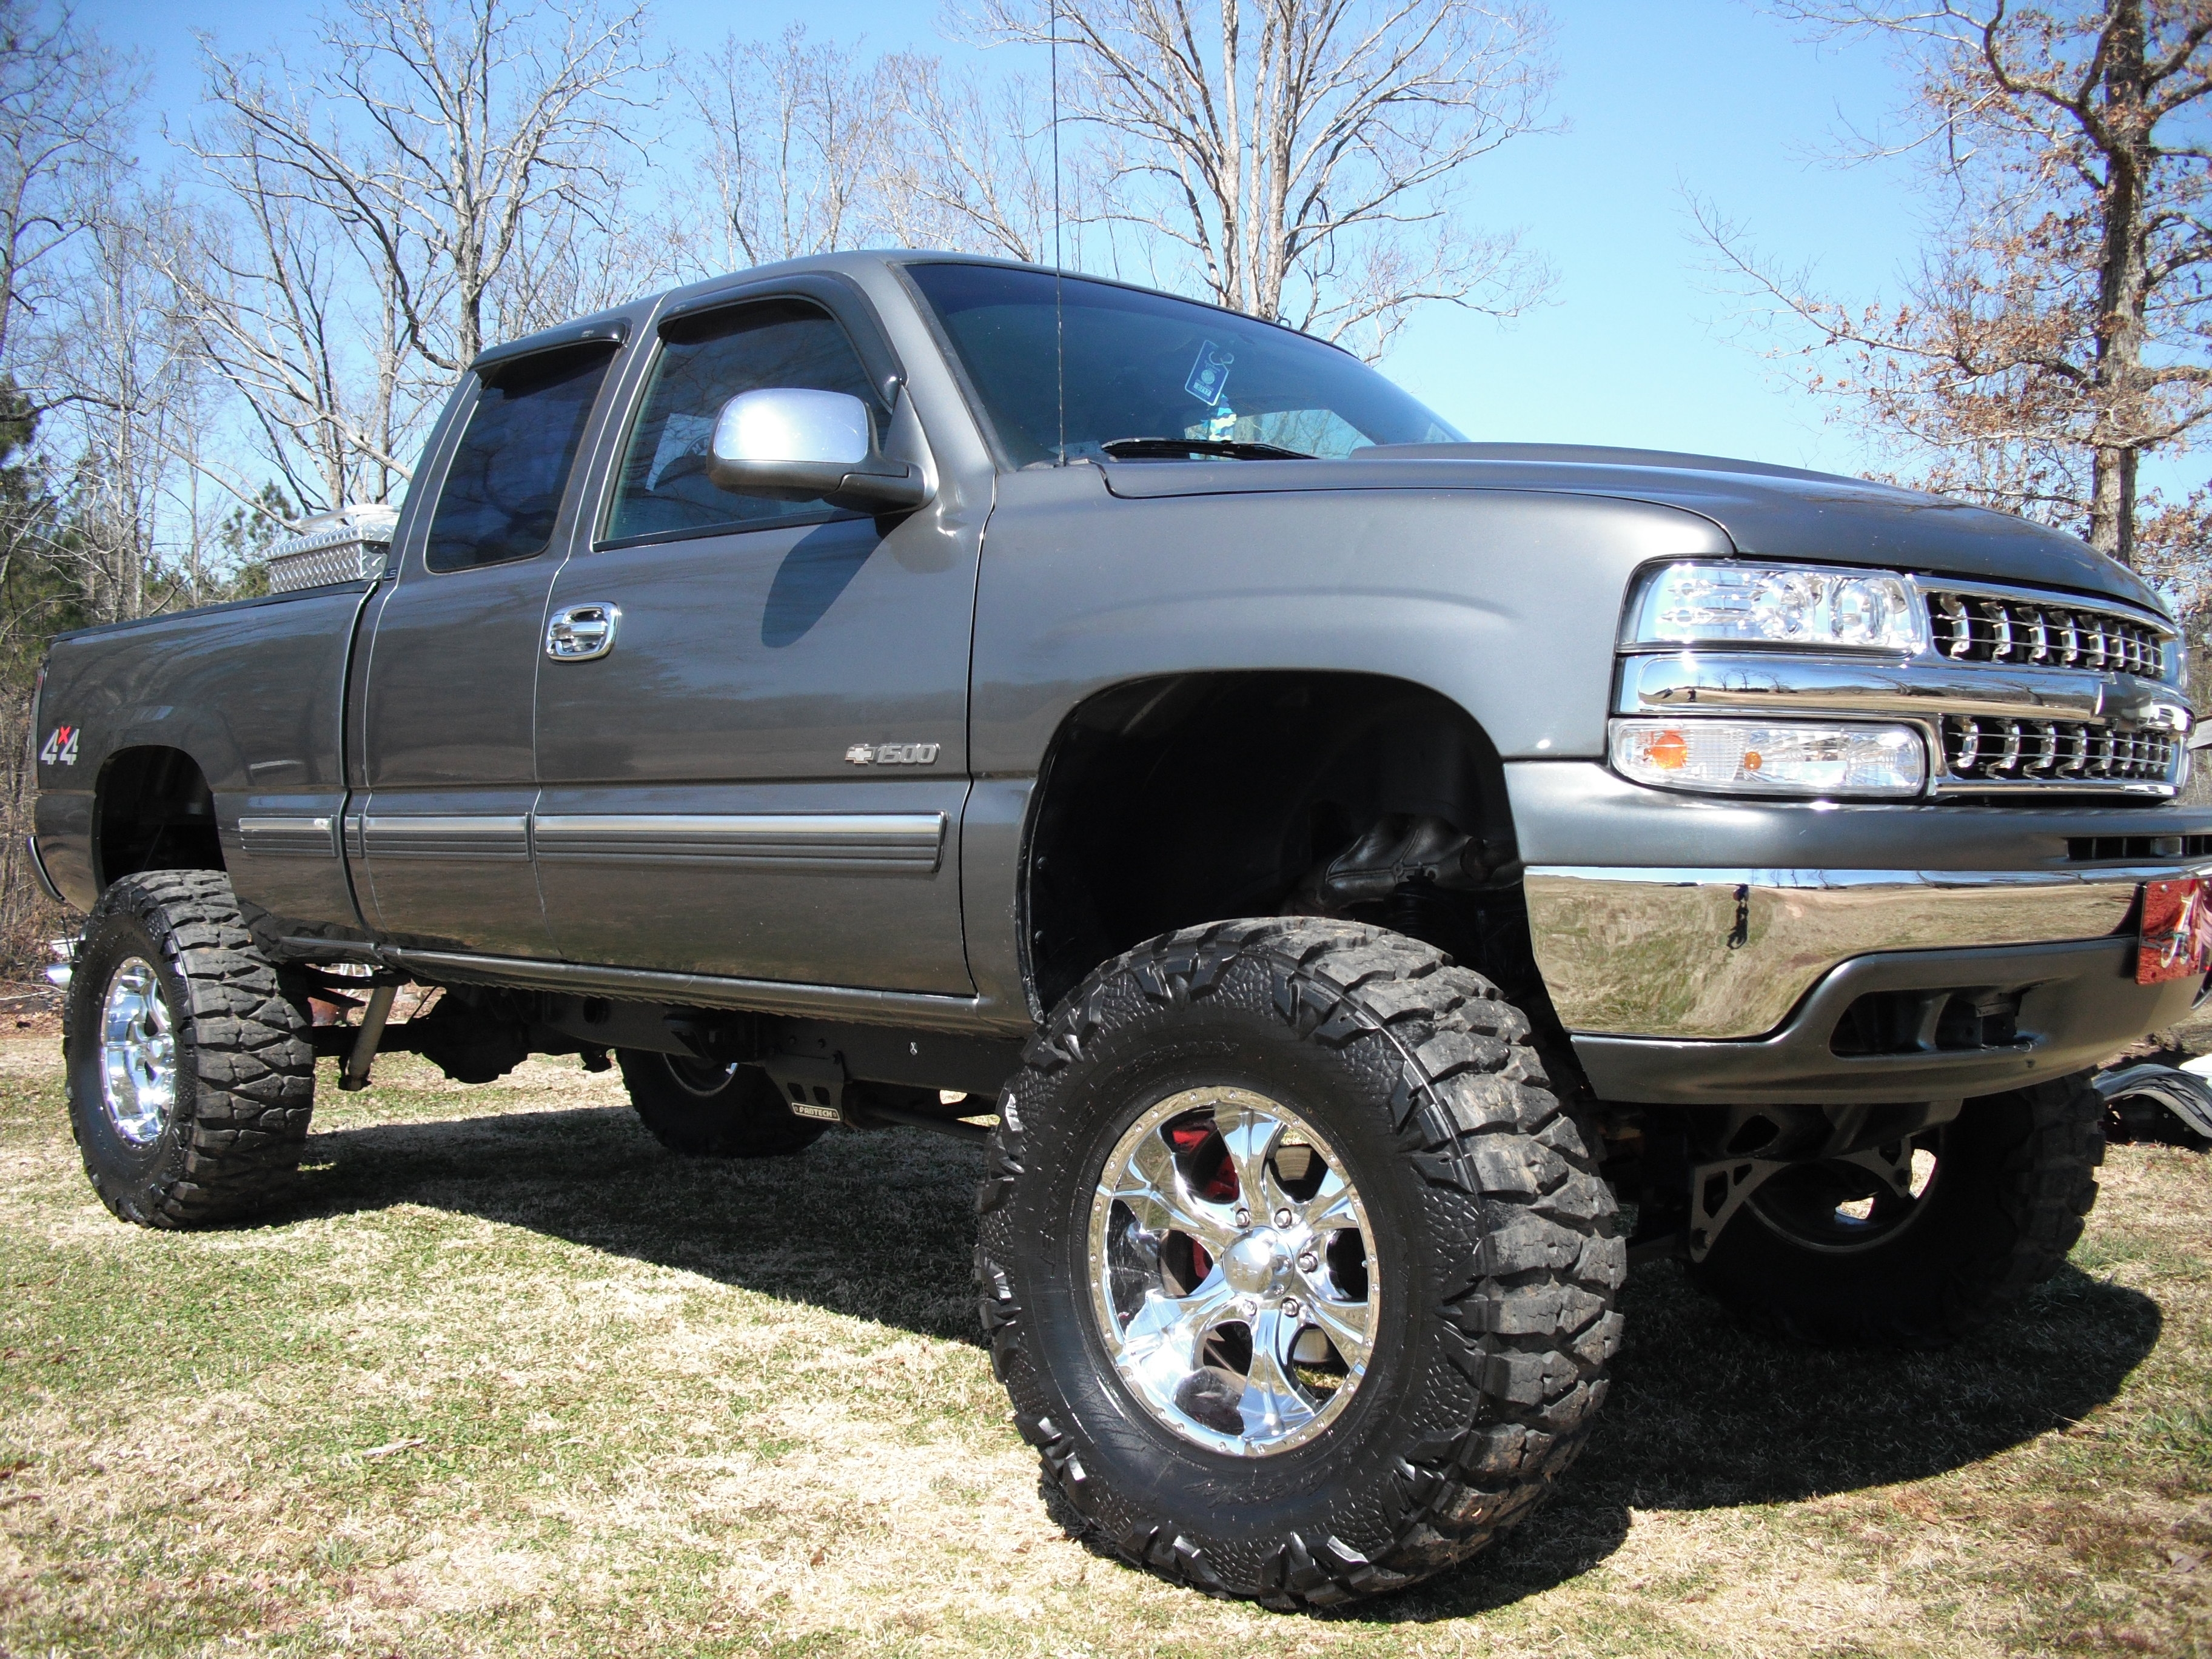 atm7816 2001 Chevrolet Silverado 1500 Extended CabShort Bed Specs, Photos, Modification Info at ...